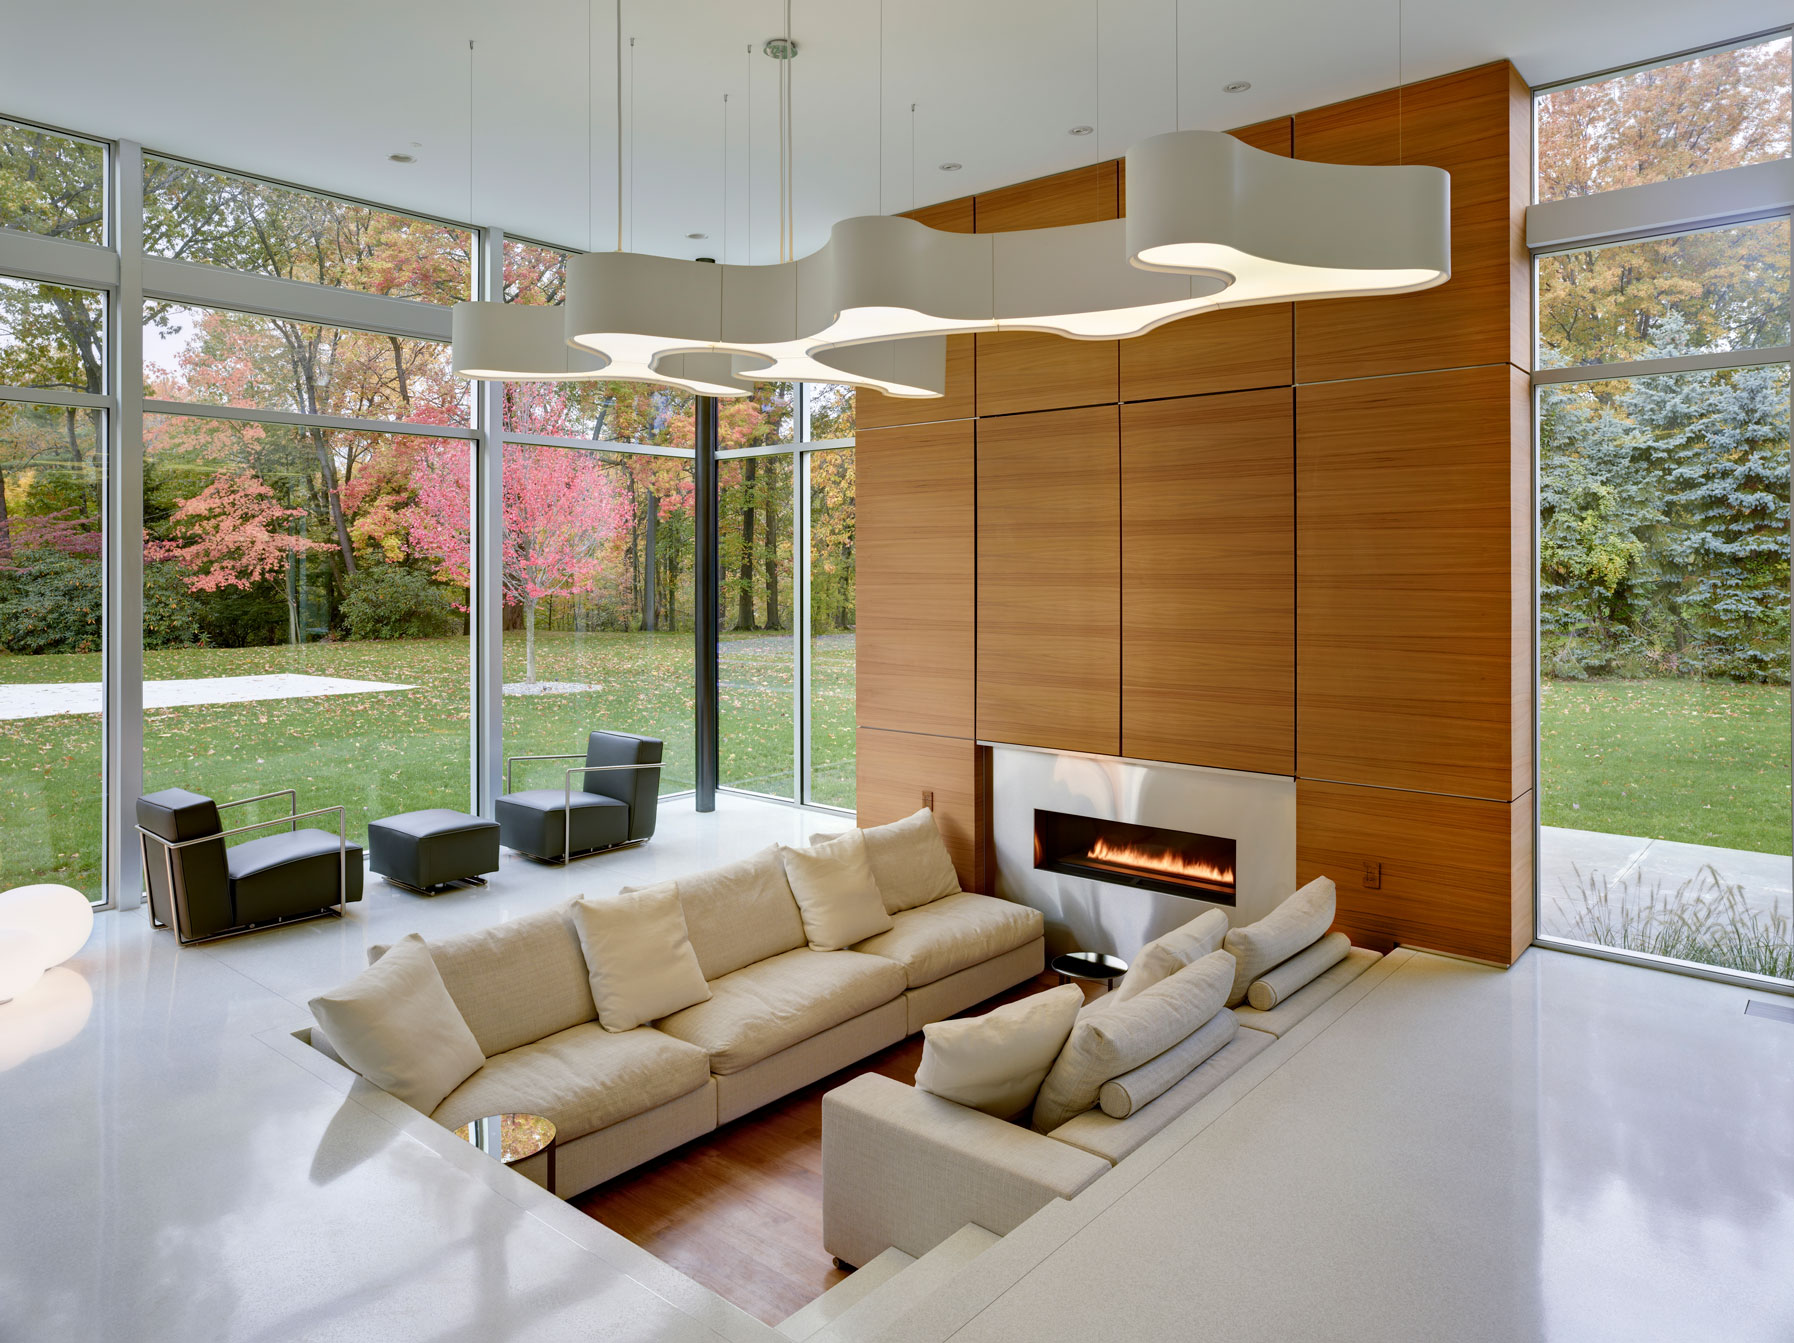 Shaker Residence - Interiors - Dimit Architects on shaker style home design, modern contemporary house design, modern outdoor fireplace designs,